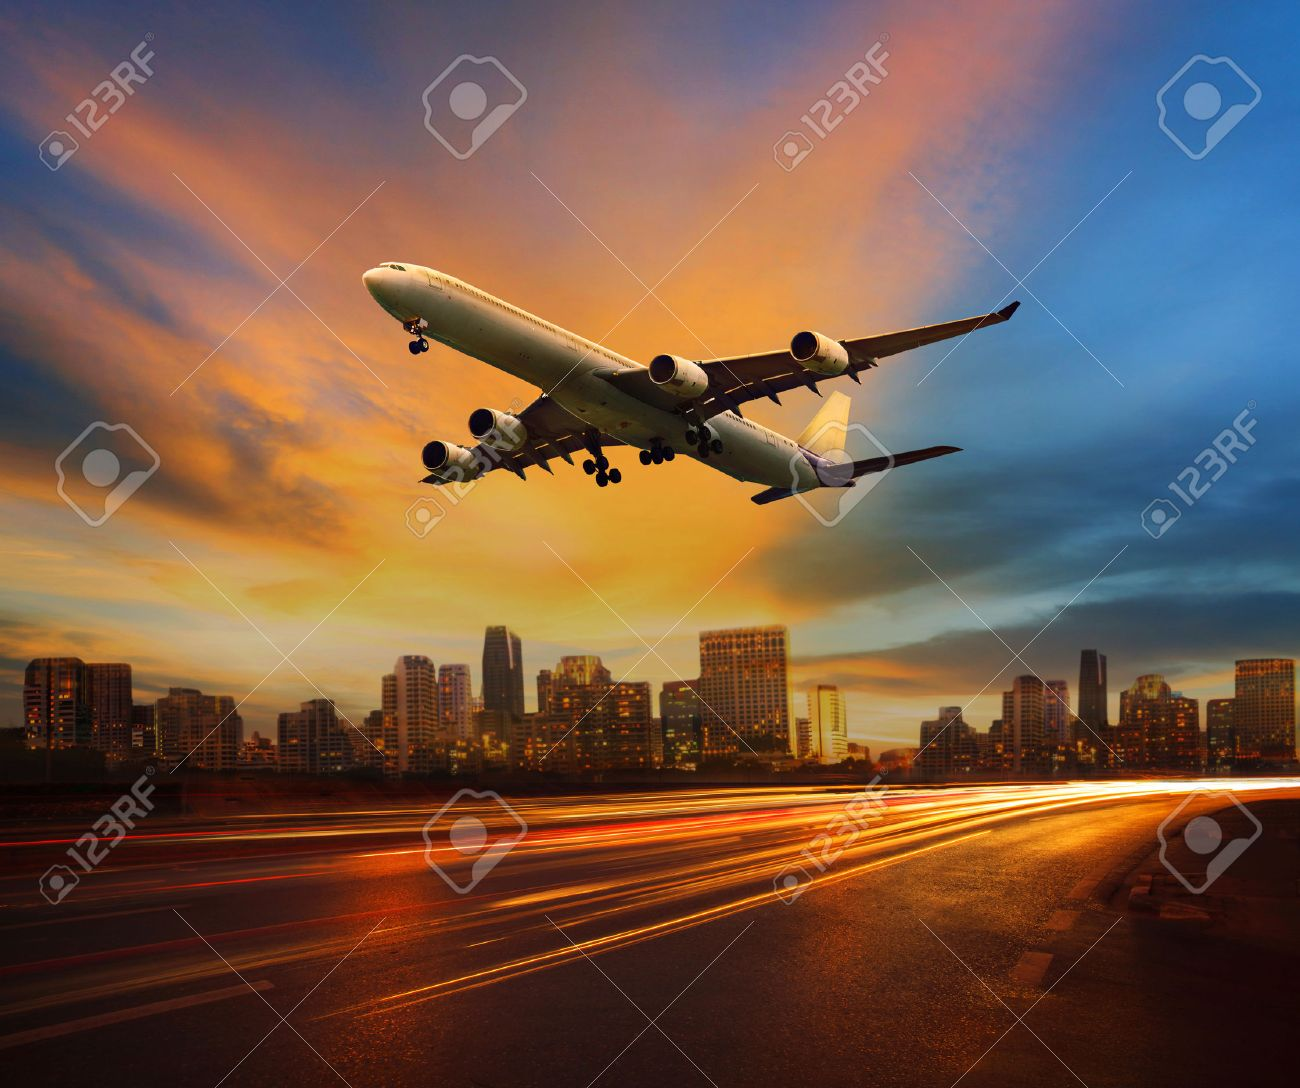 air transport building stock photos u0026 pictures royalty free air